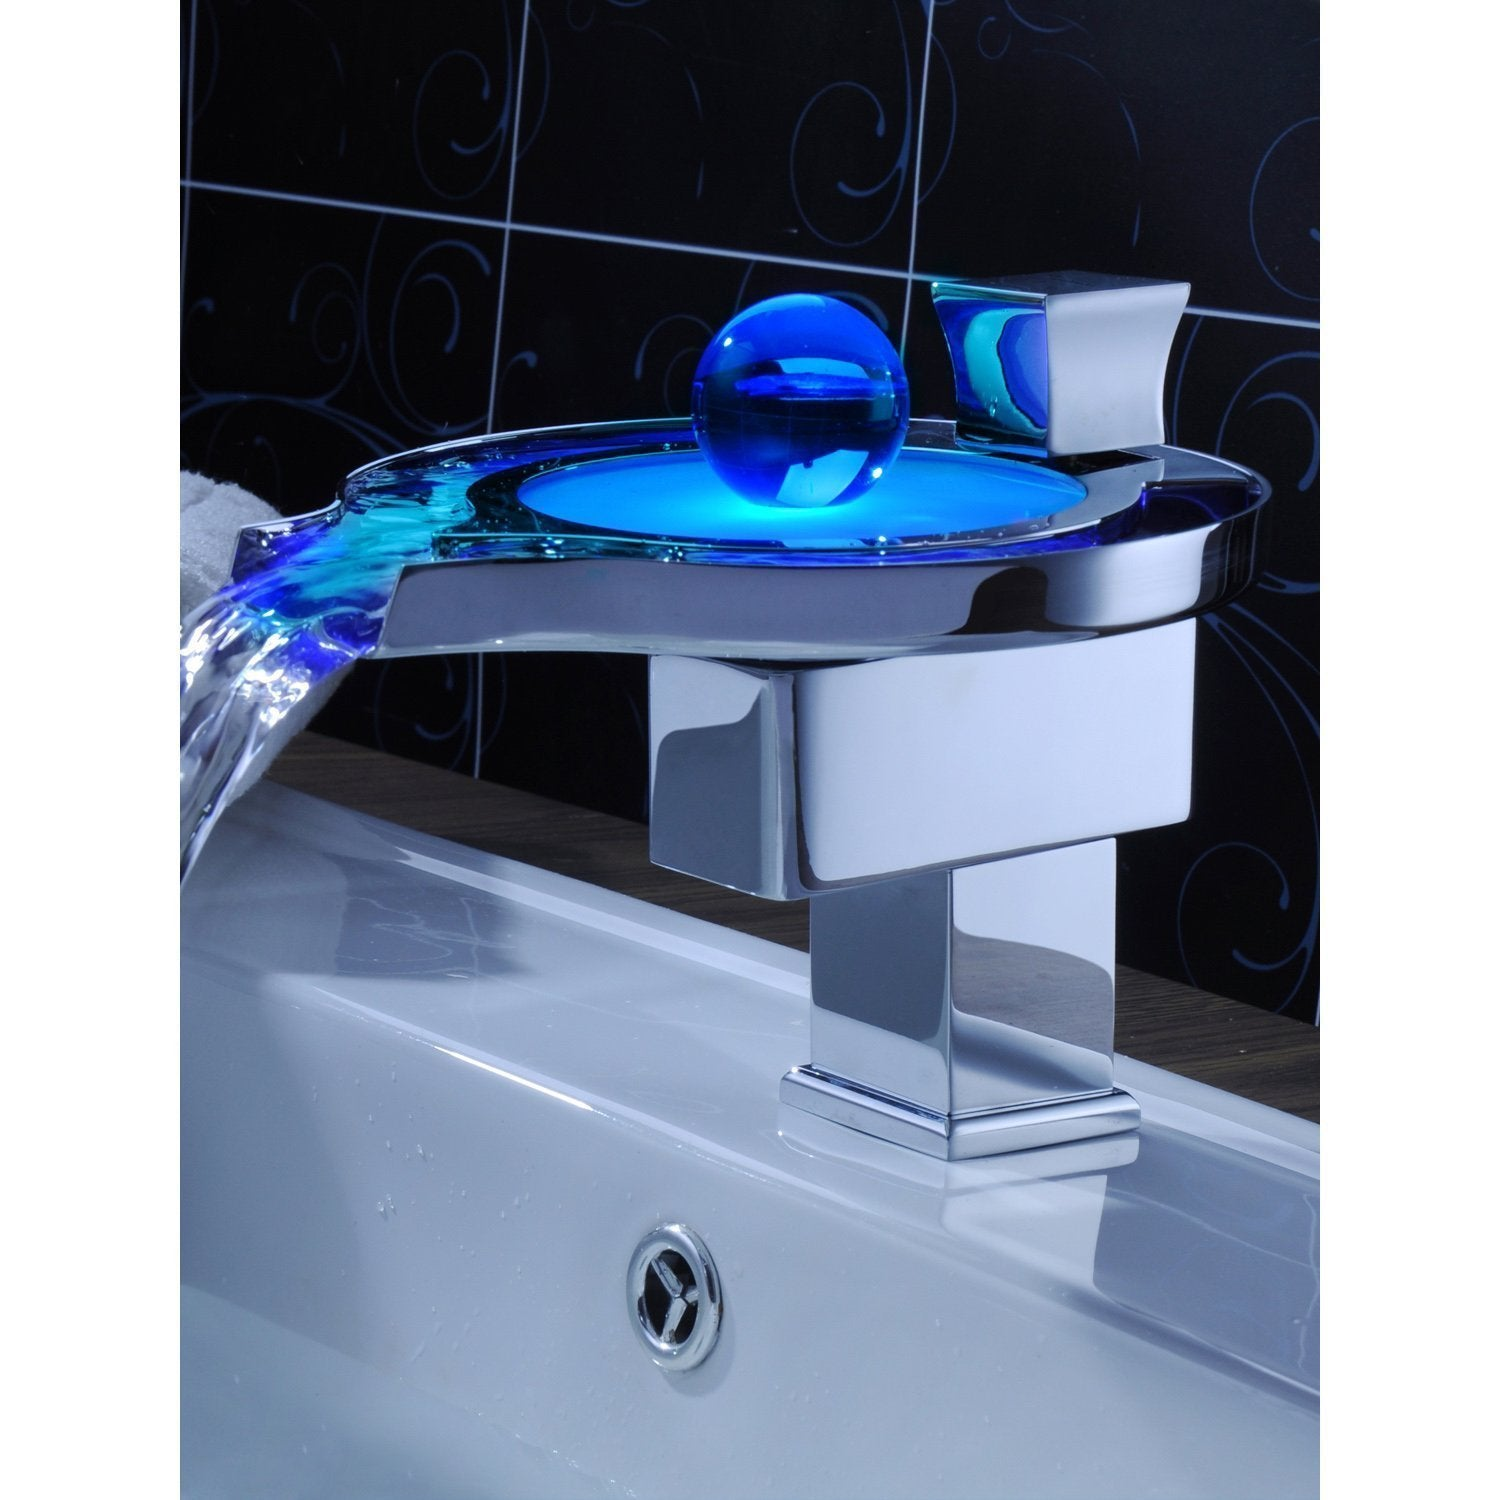 Color Changing LED Waterfall Bathroom Sink Faucet - Cascada Showers